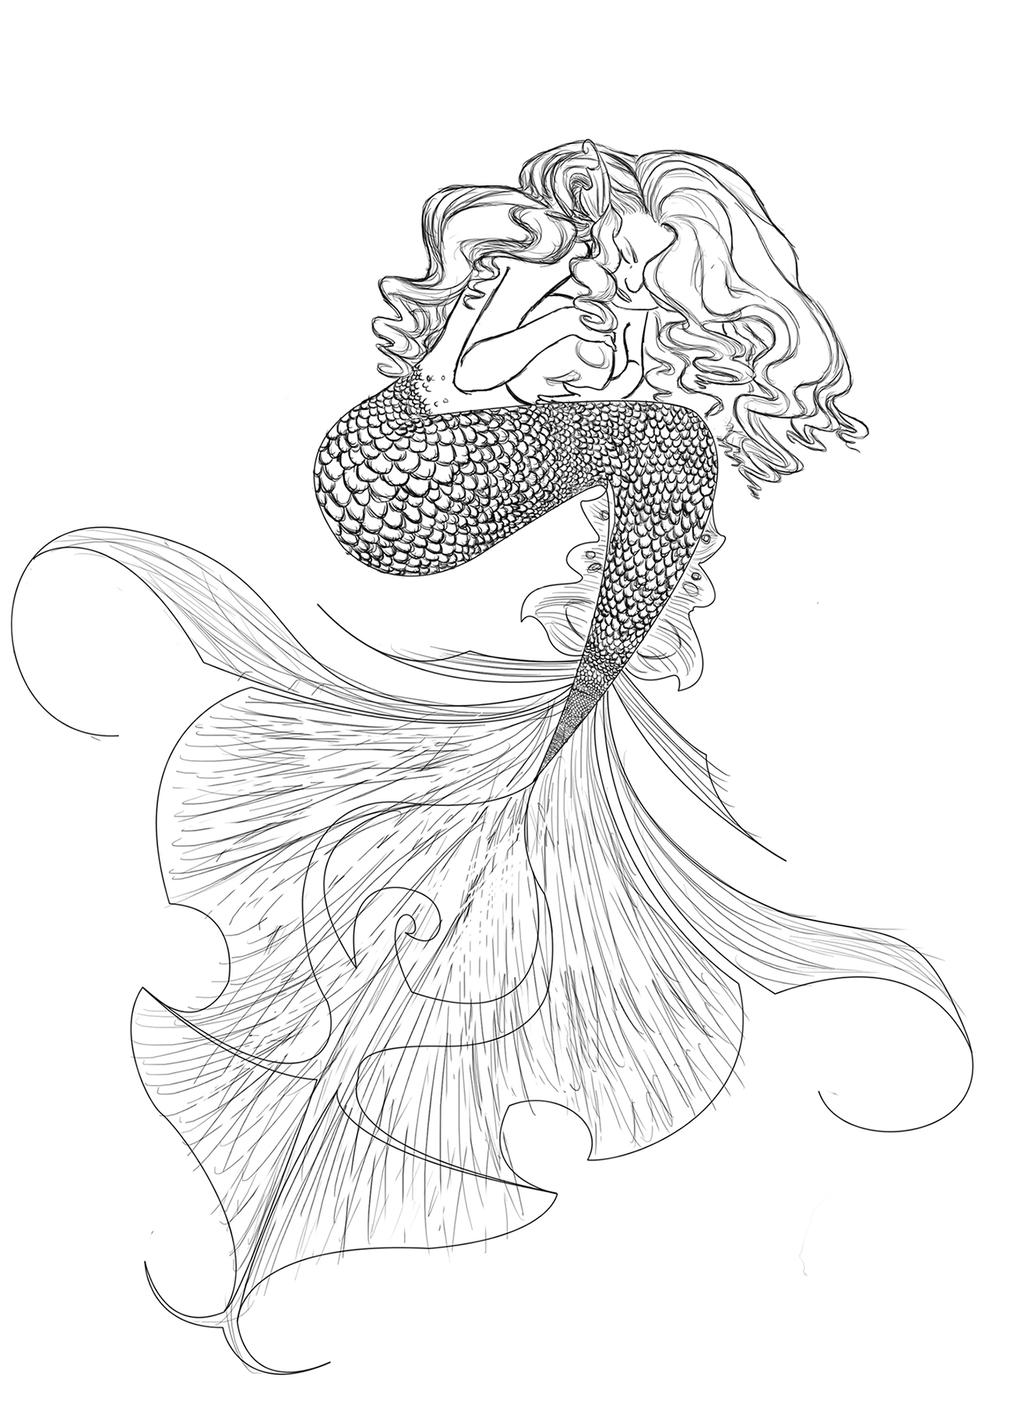 Line Art How To : Mermaid line drawing by jocegurr on deviantart